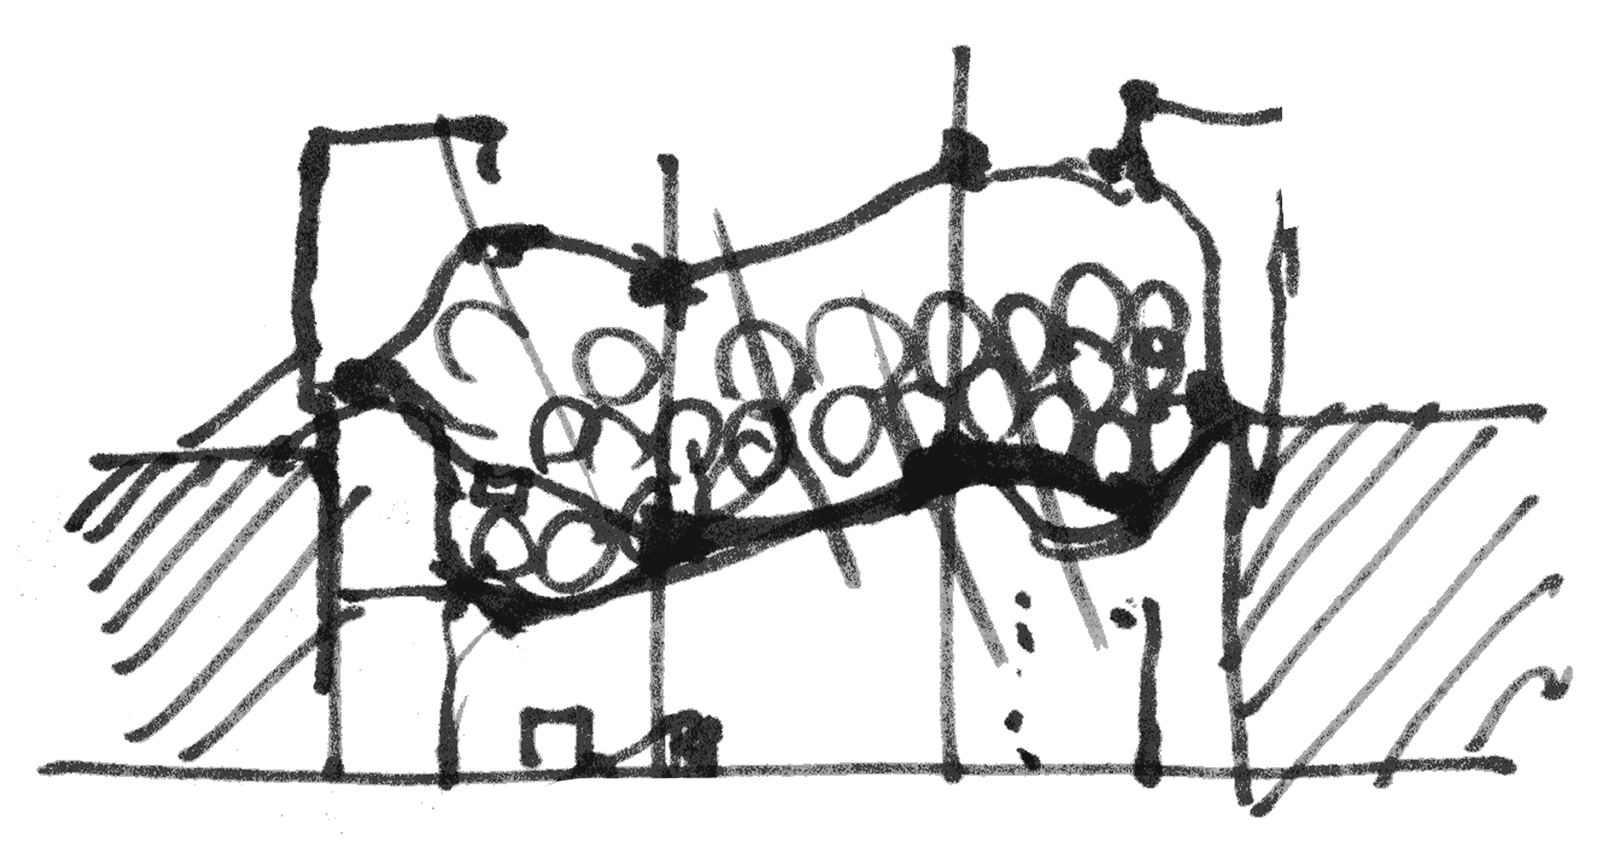 Study sketch illustrating the morphing nature of the PEP shade canopy system with hydraulics that shift the shape